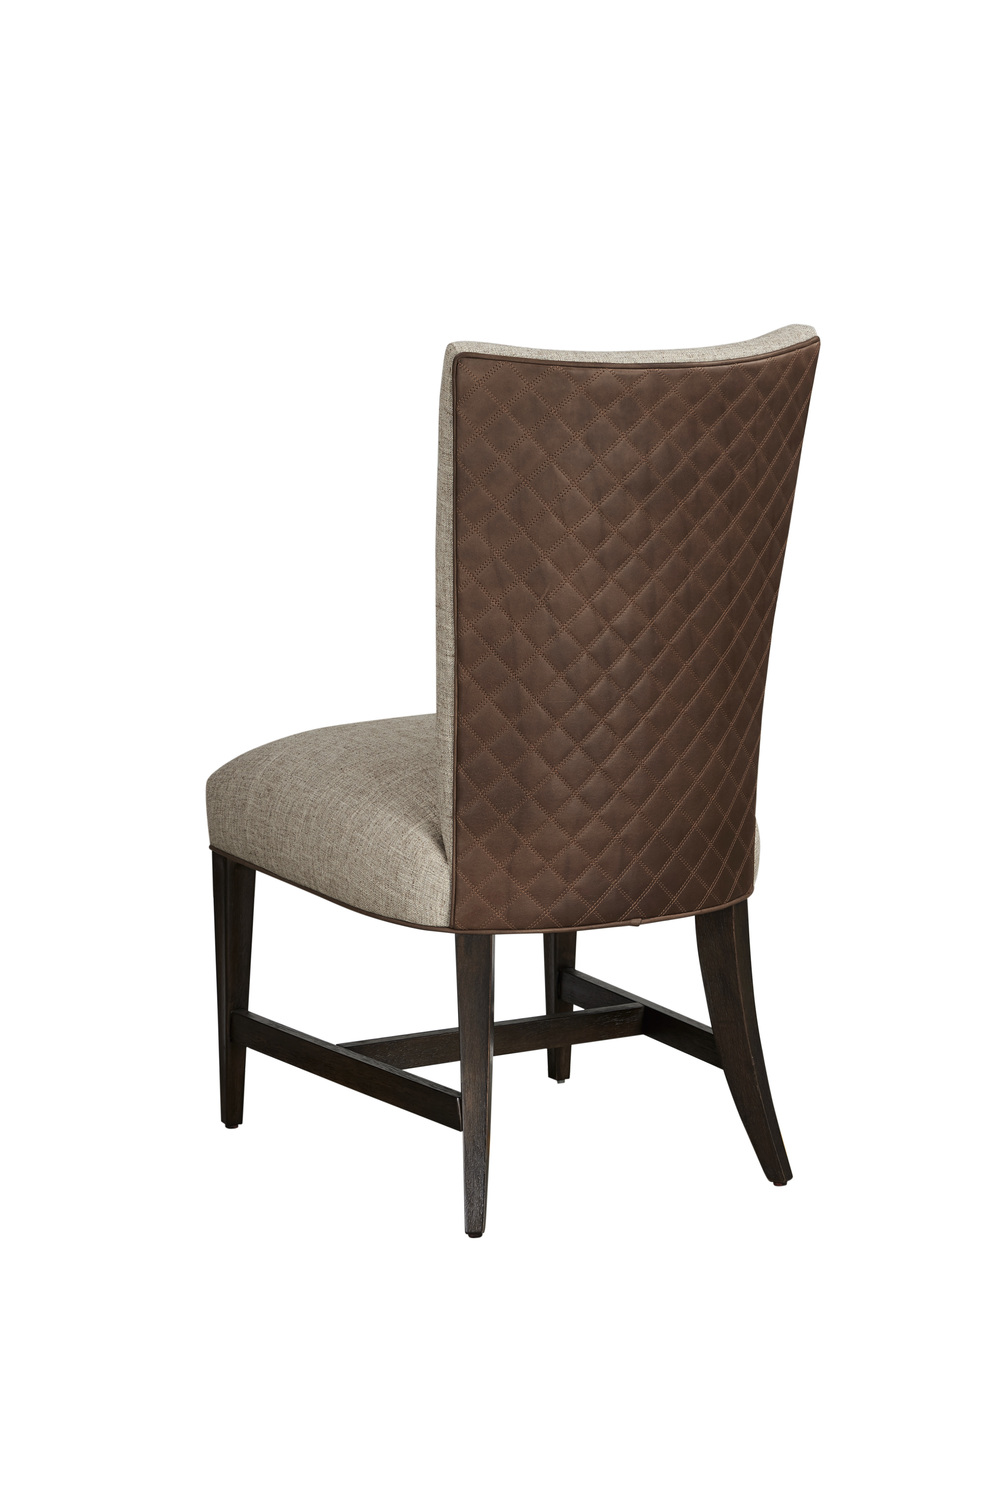 A.R.T. Furniture - Racine Upholstered Side Chair